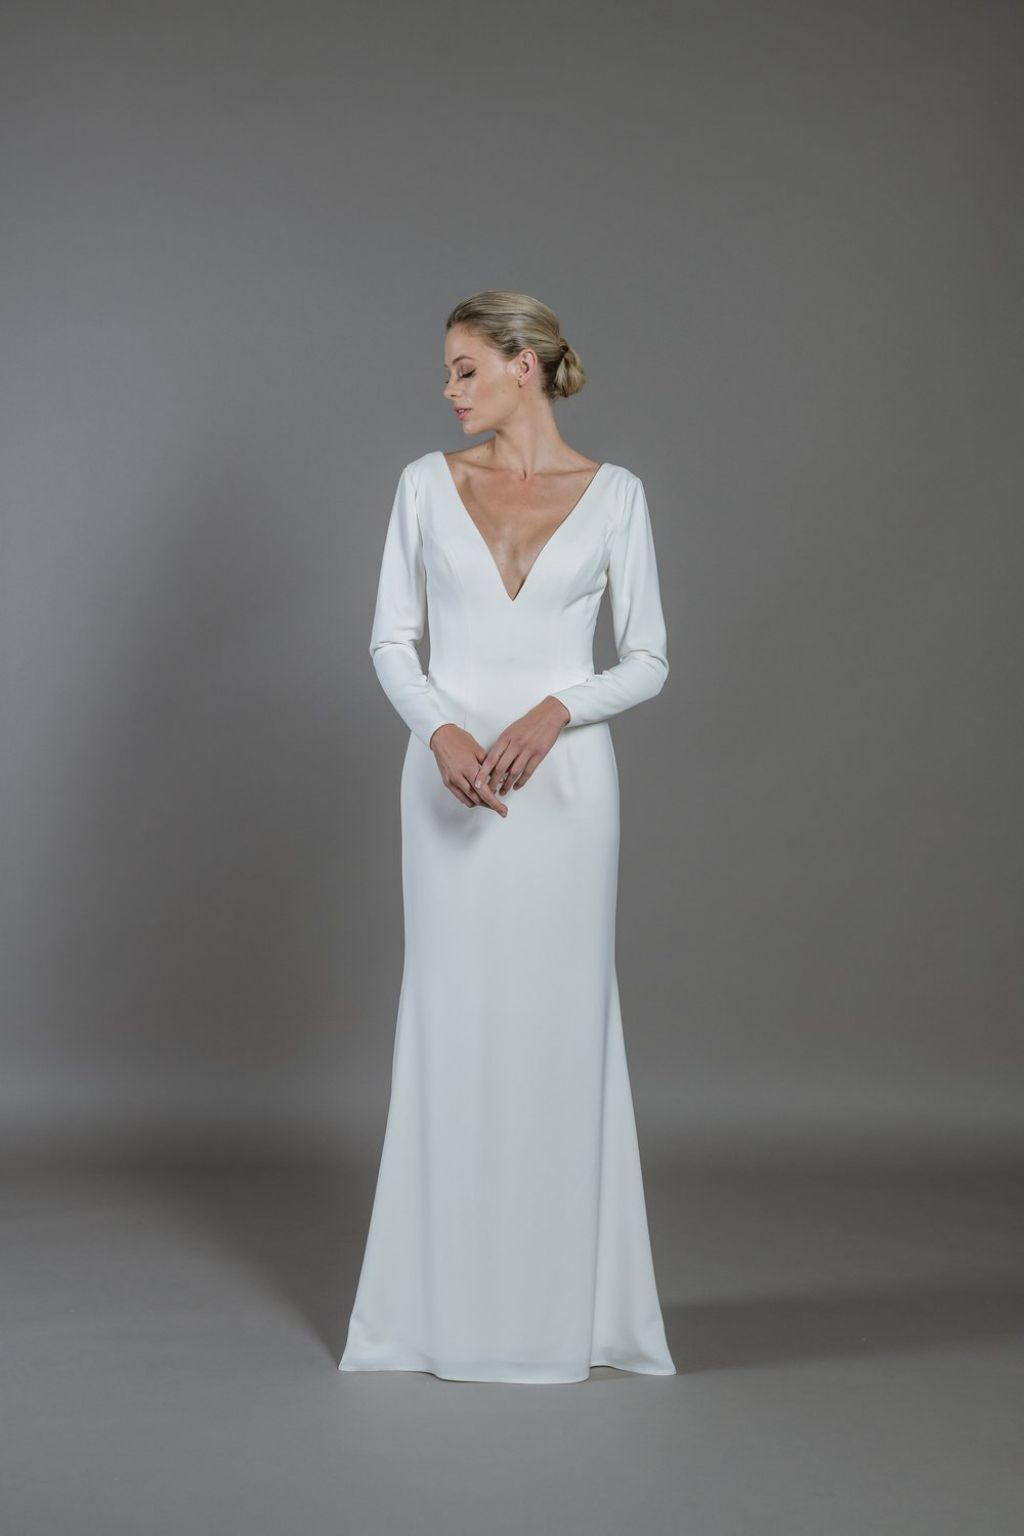 8 Relaxed Wedding Dress Styles We Love